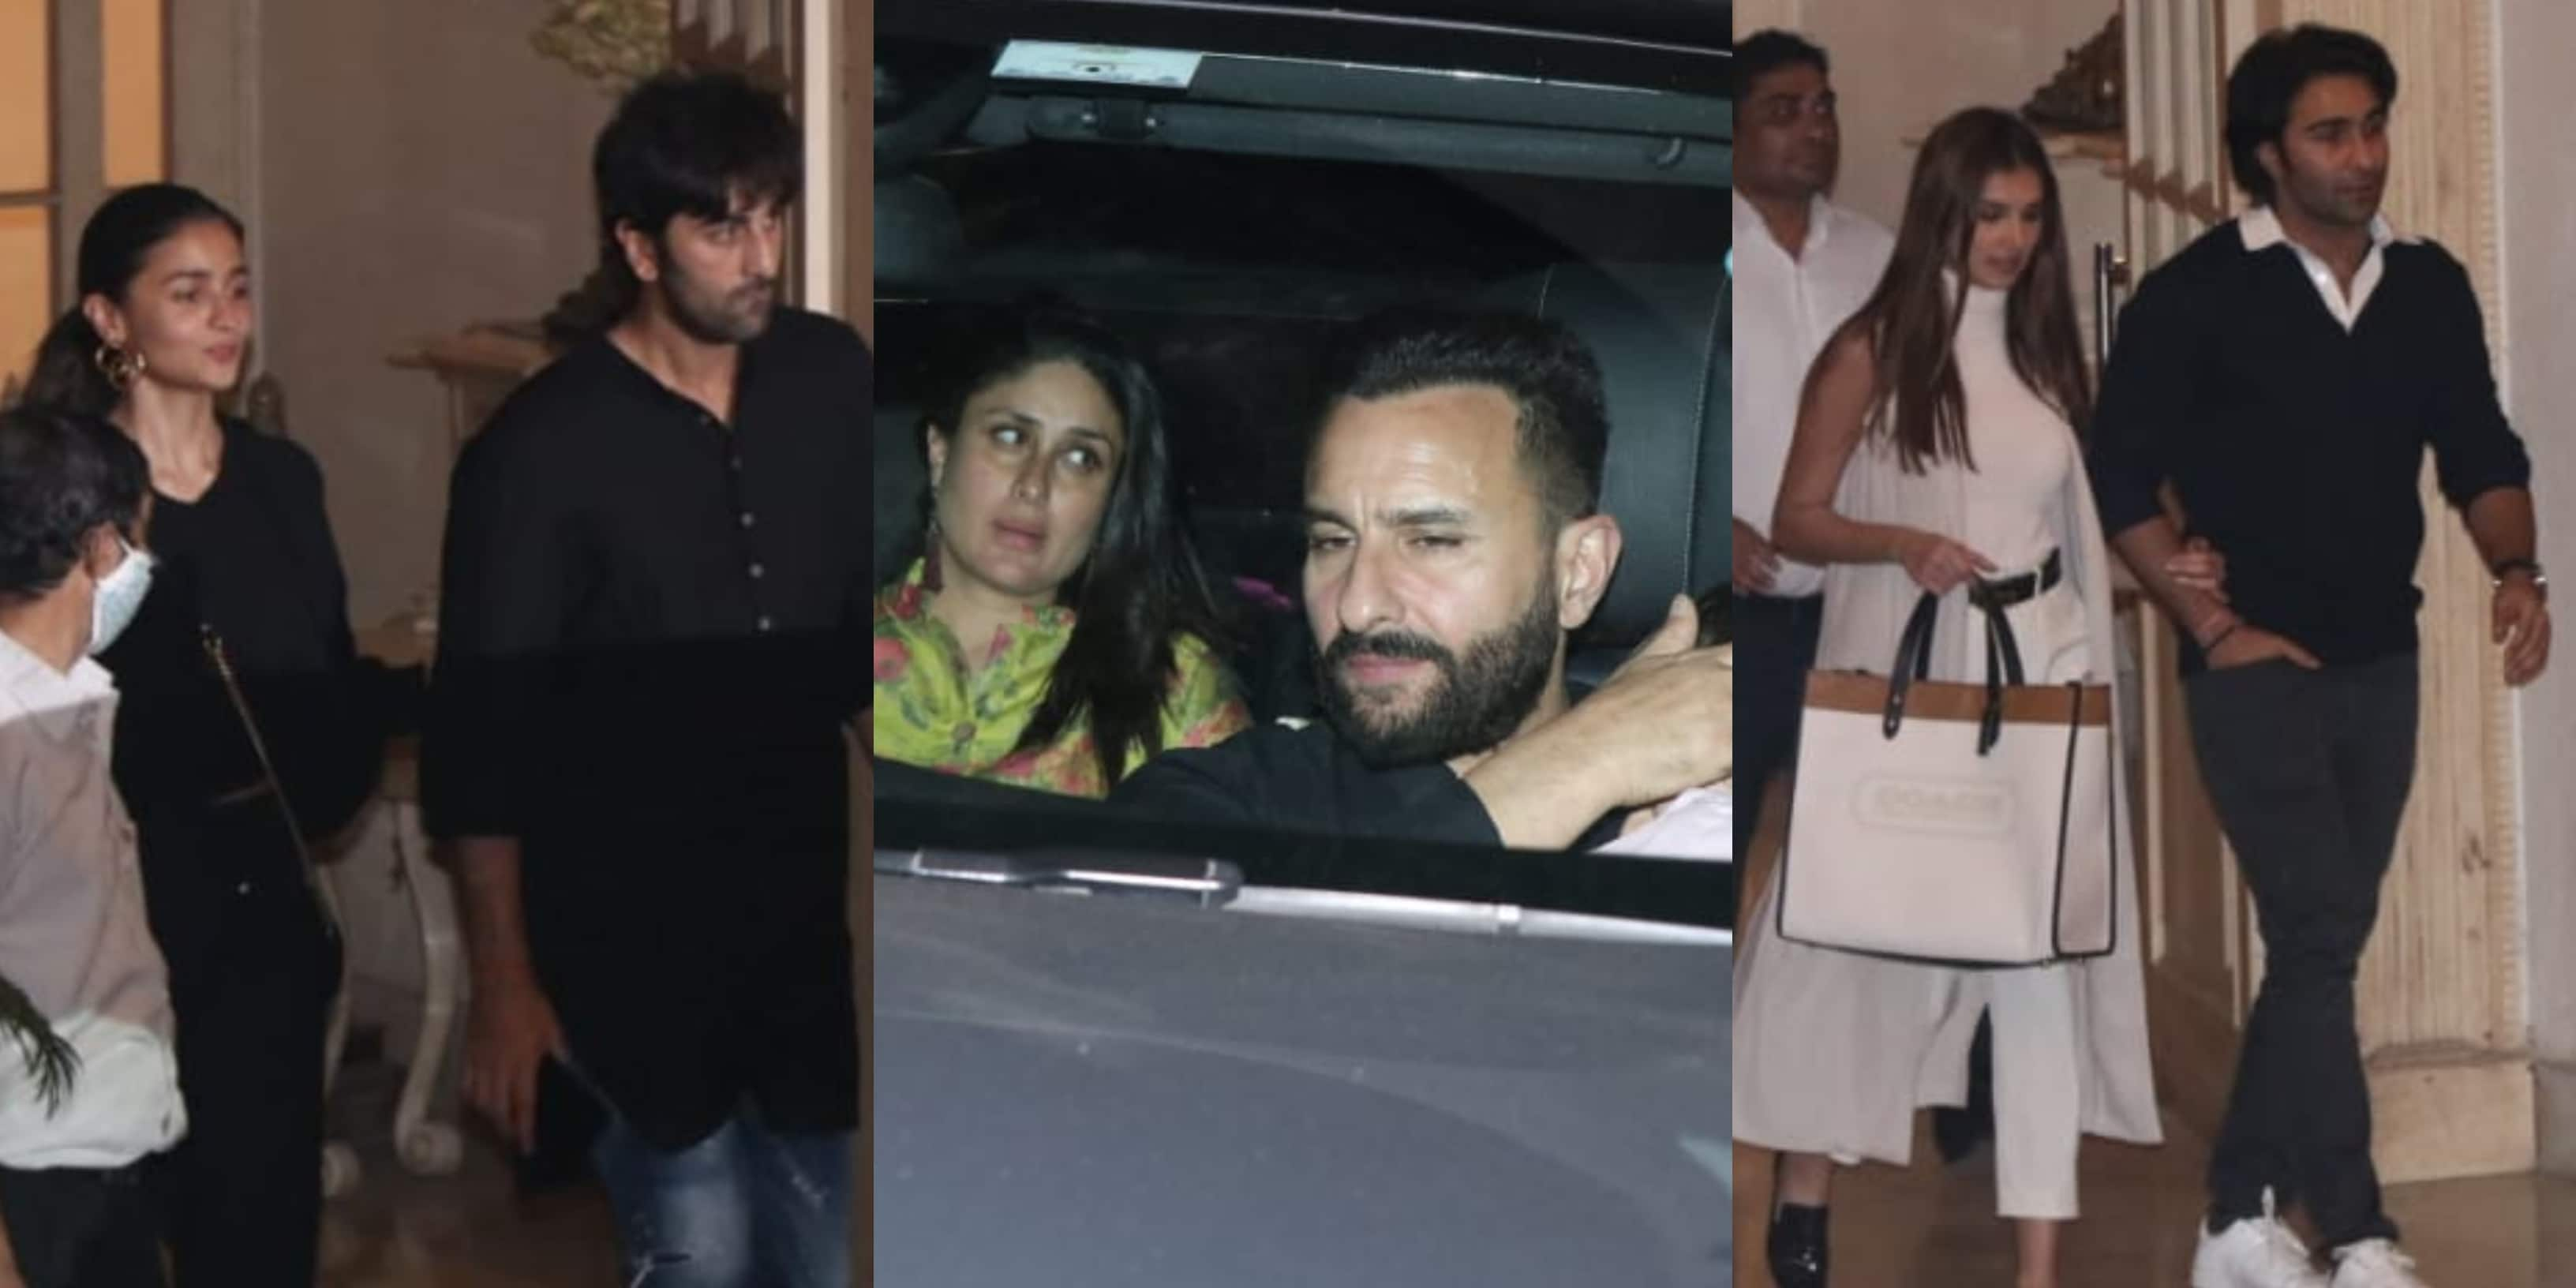 Randhir Kapoor Birthday: Kareena-Saif, Ranbir-Alia, Aadar-Tara Sutaria And Others Attend The Intimate Bash